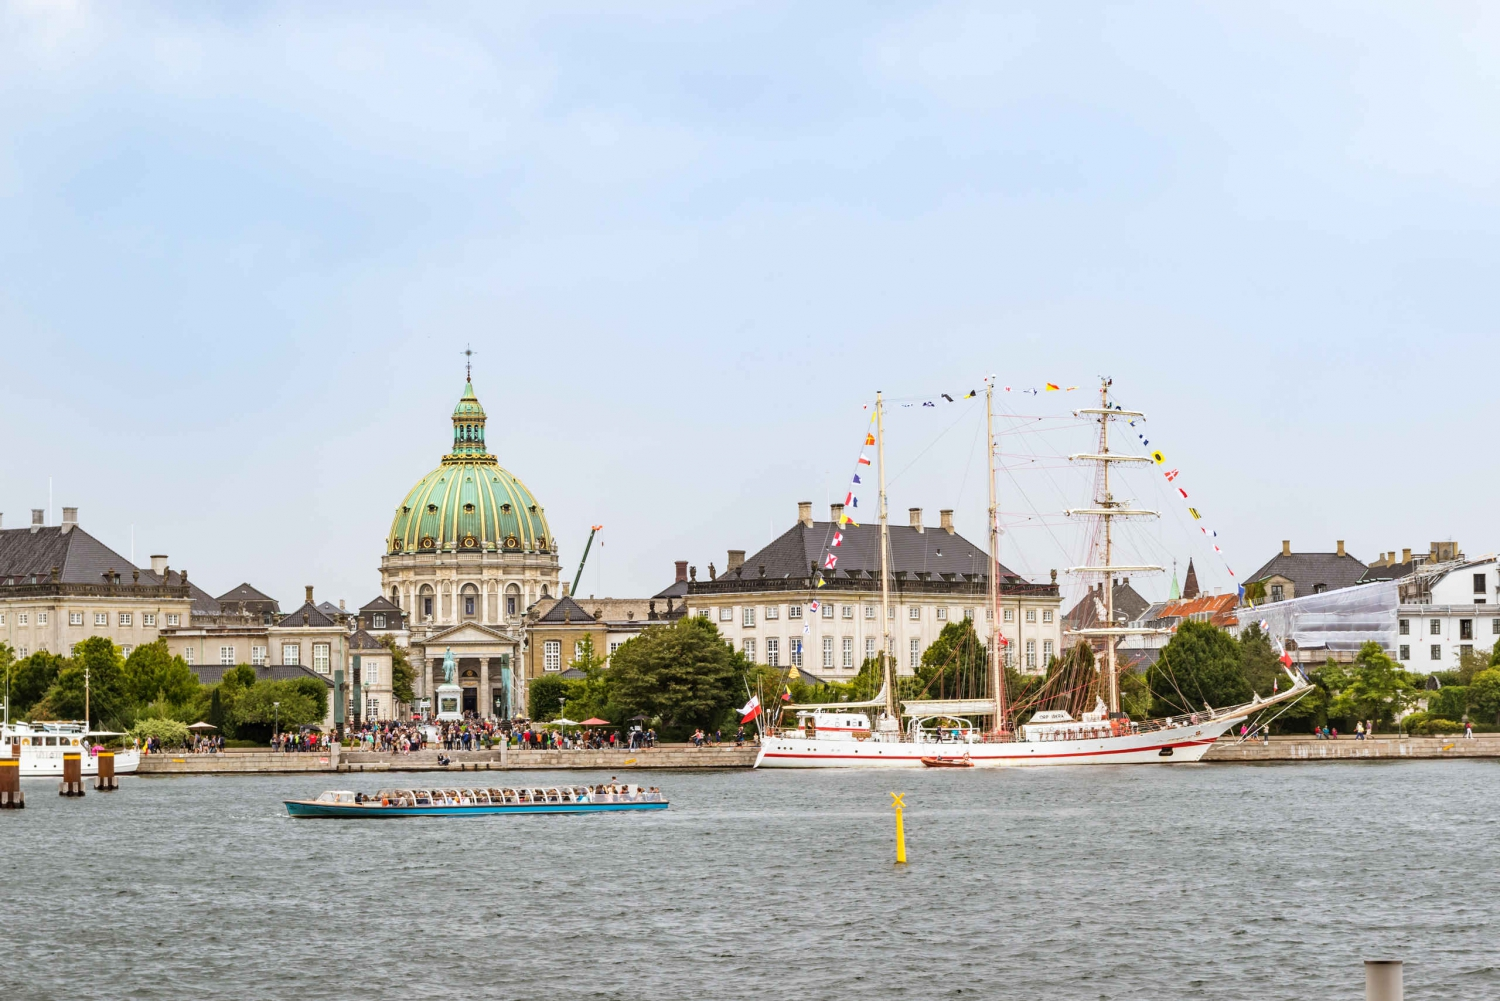 Copenhagen Panorama Sightseeing and Canal Tour